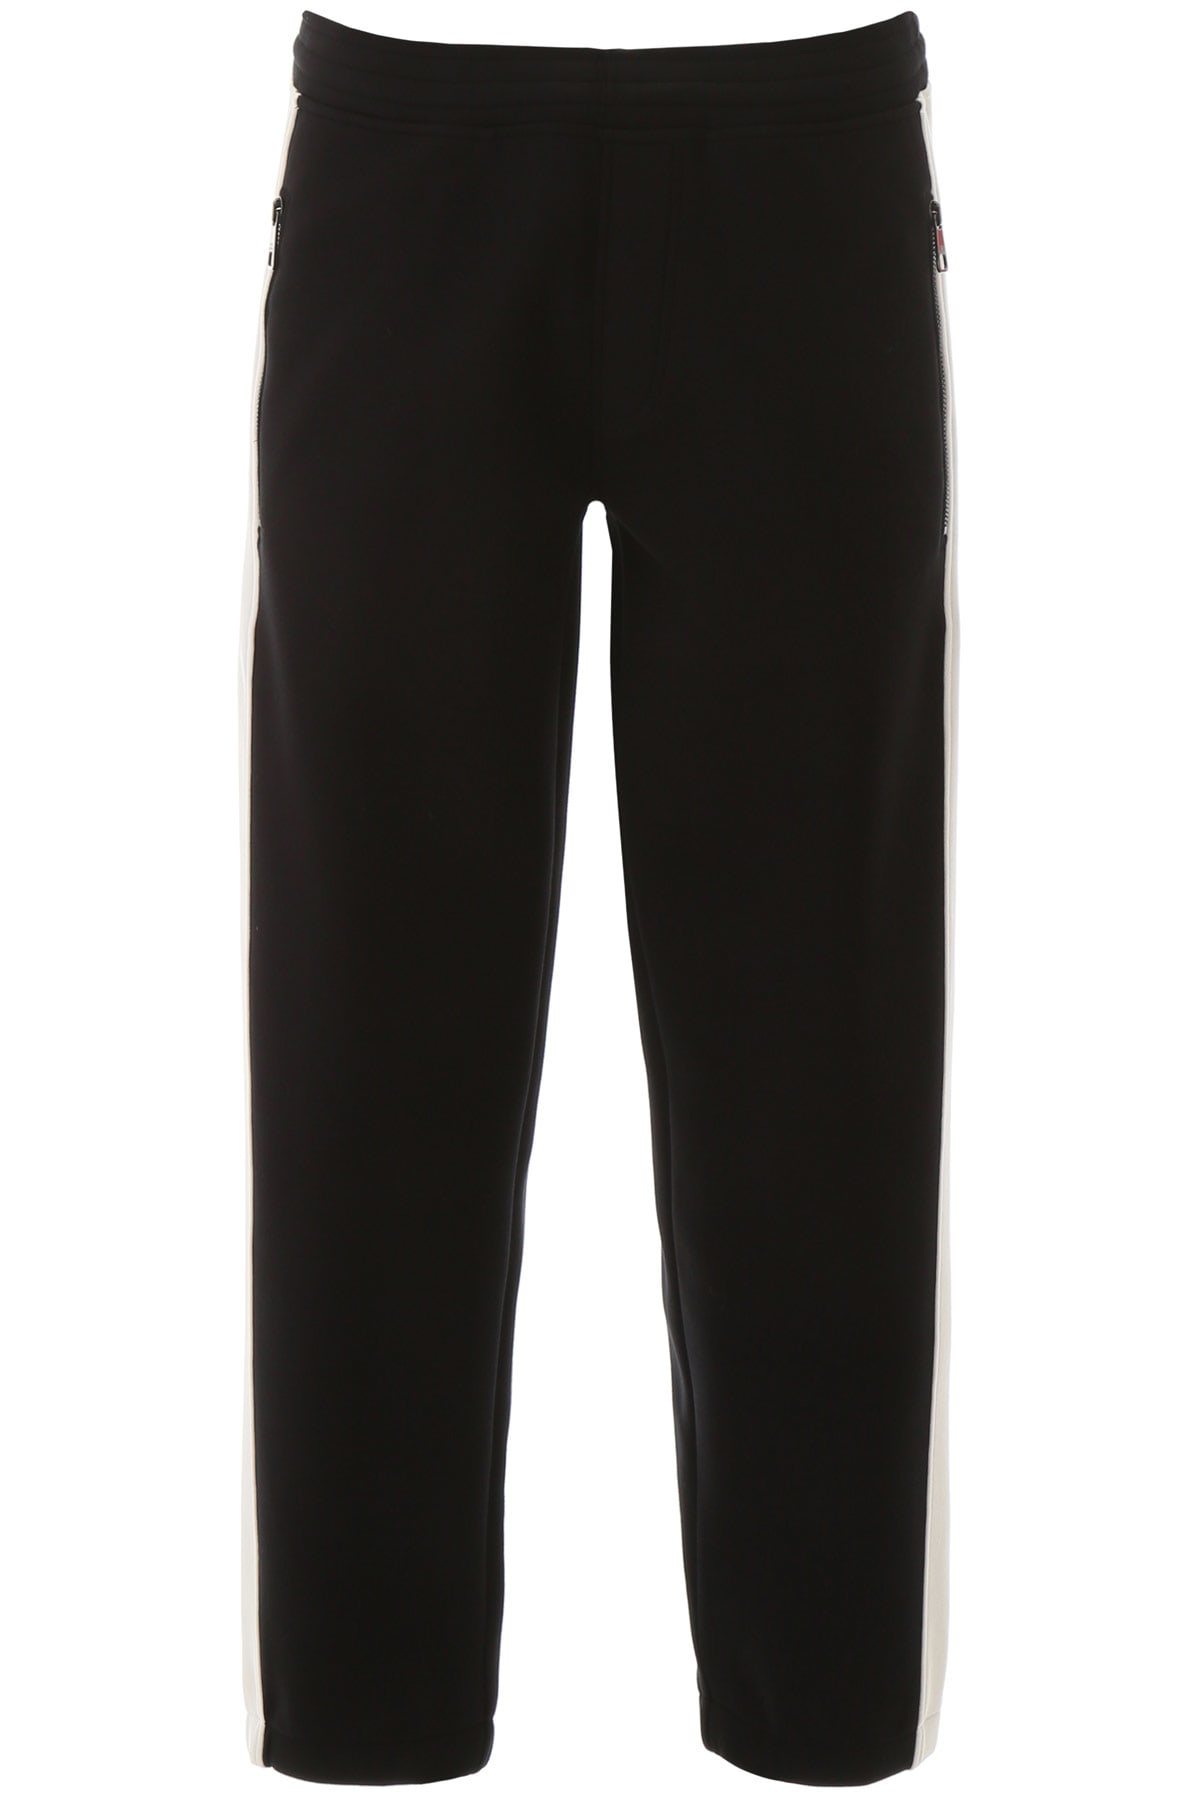 Neil Barrett Joggers With Side Bands